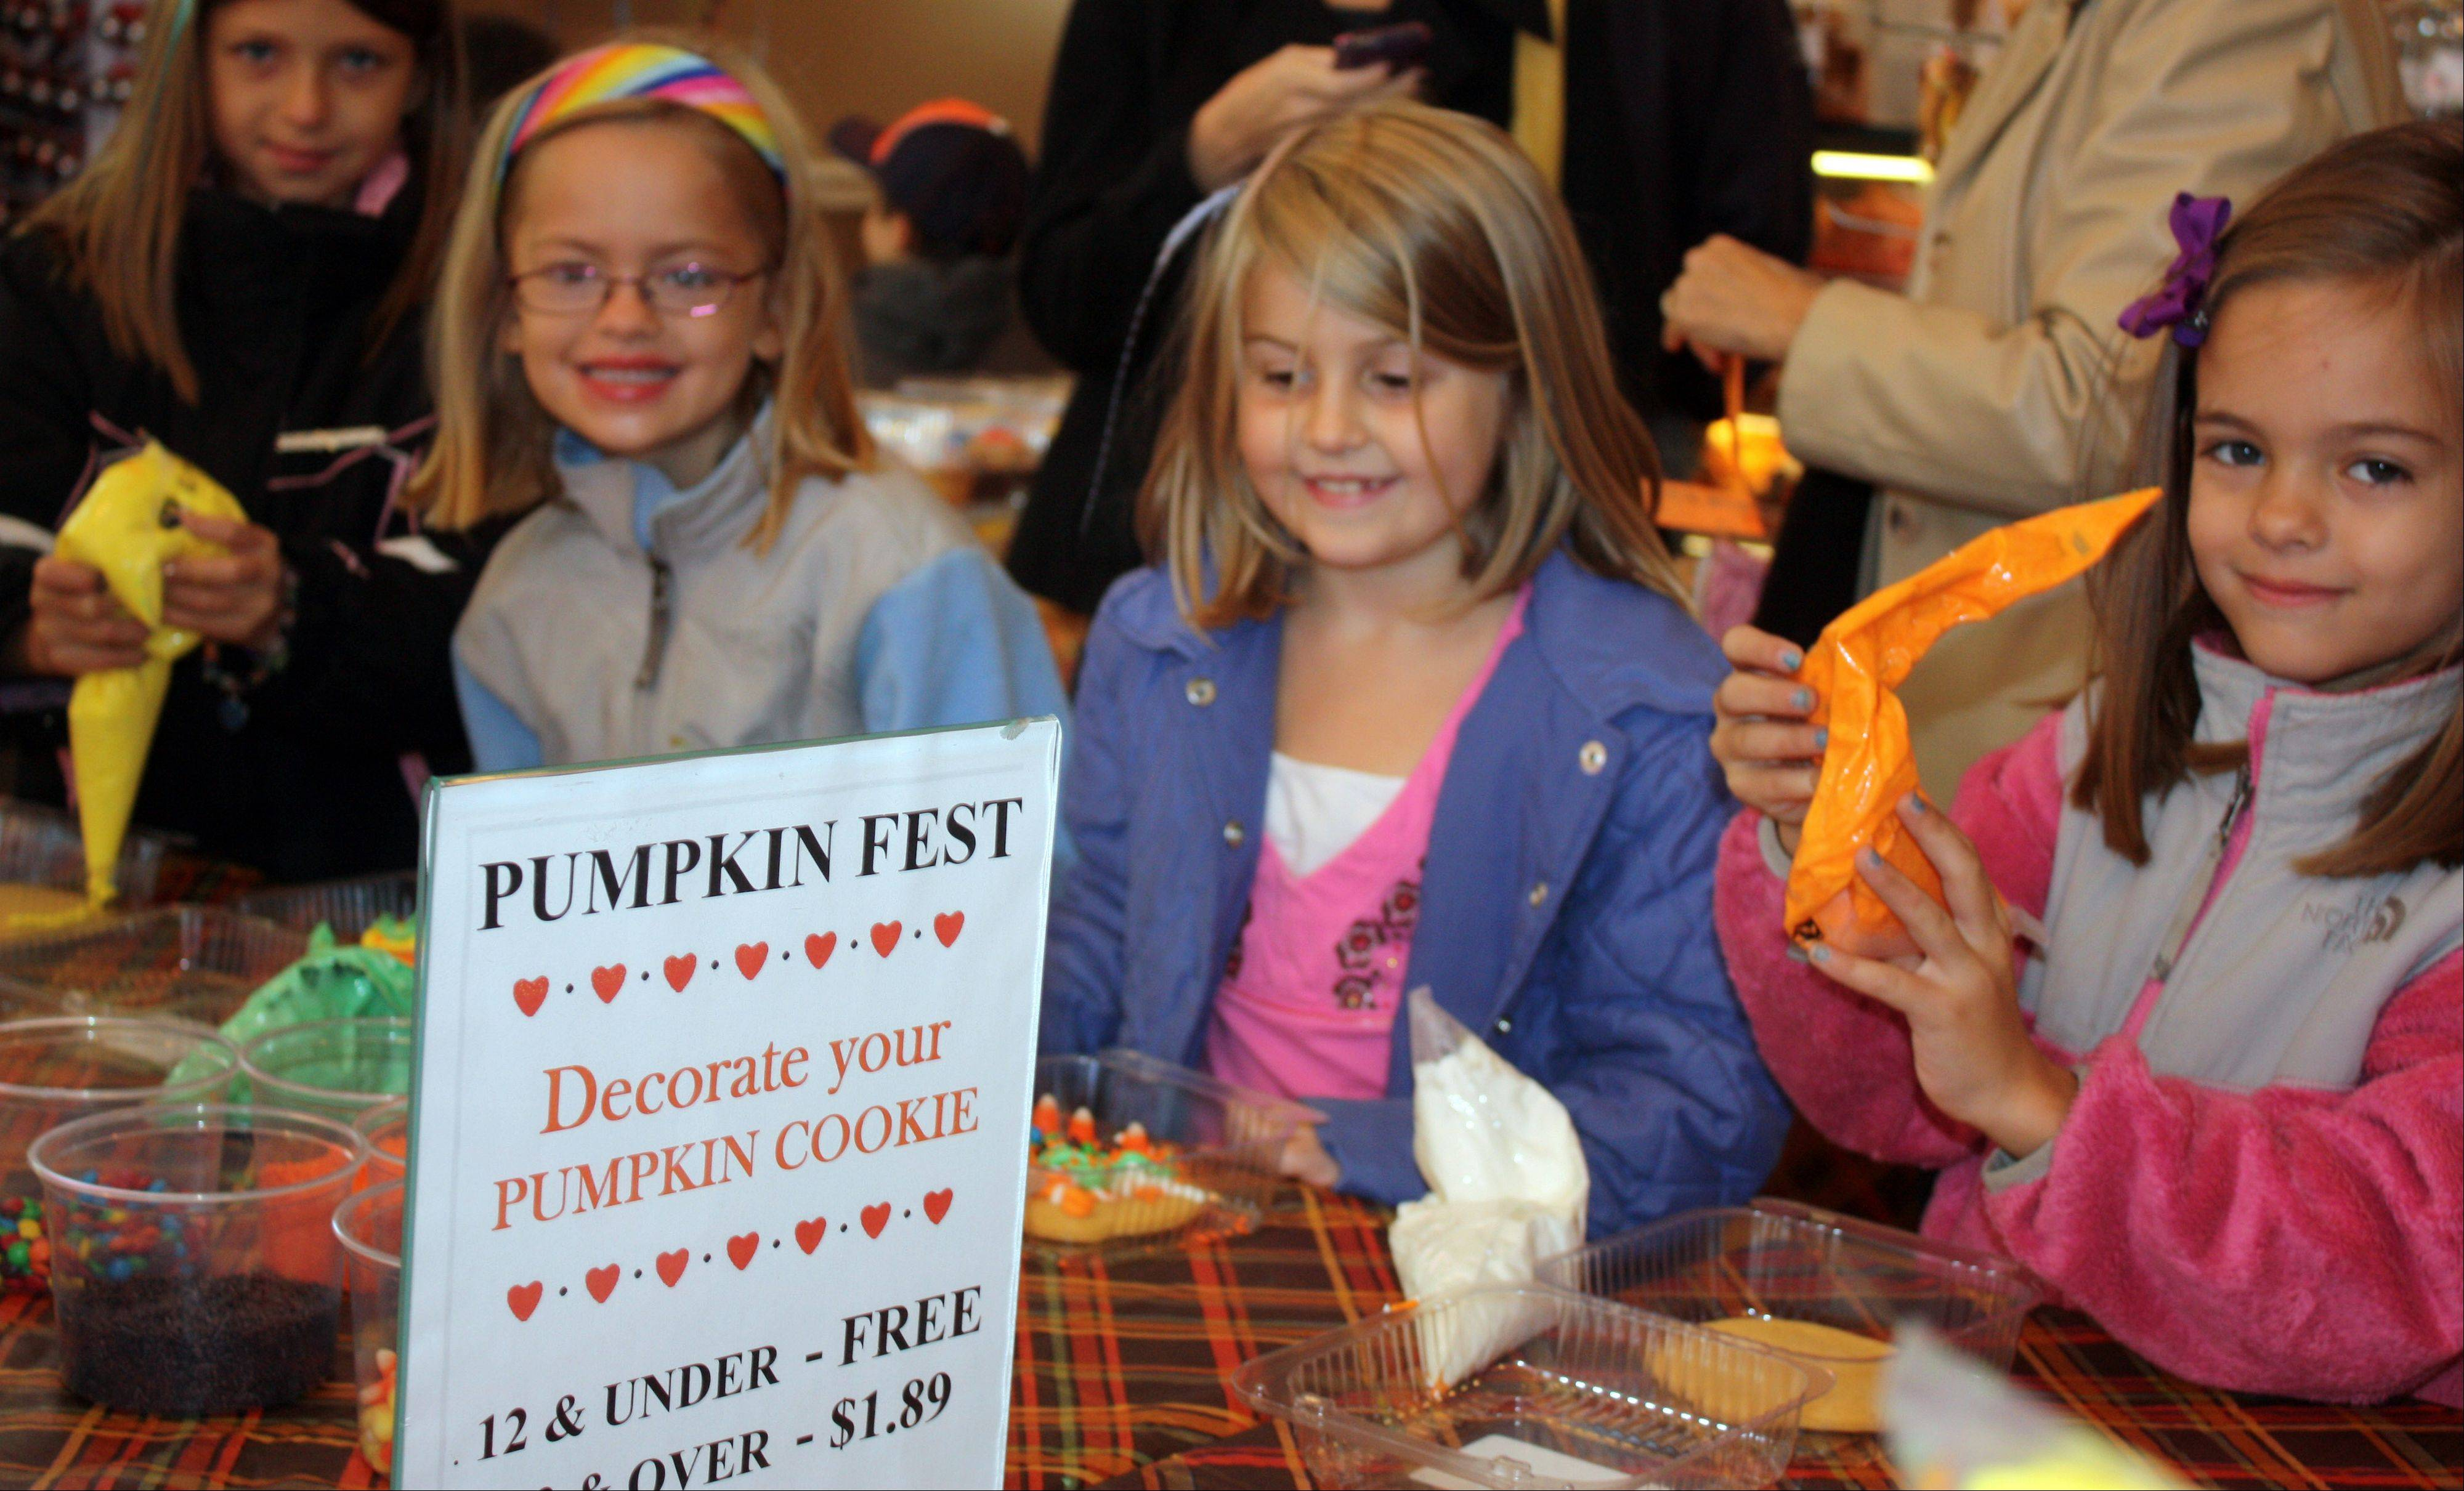 Children decorate cookies at last year's PumpkinFest, presented by the Libertyville Junior Woman's Club. This year's fest is Saturday, Oct. 13.